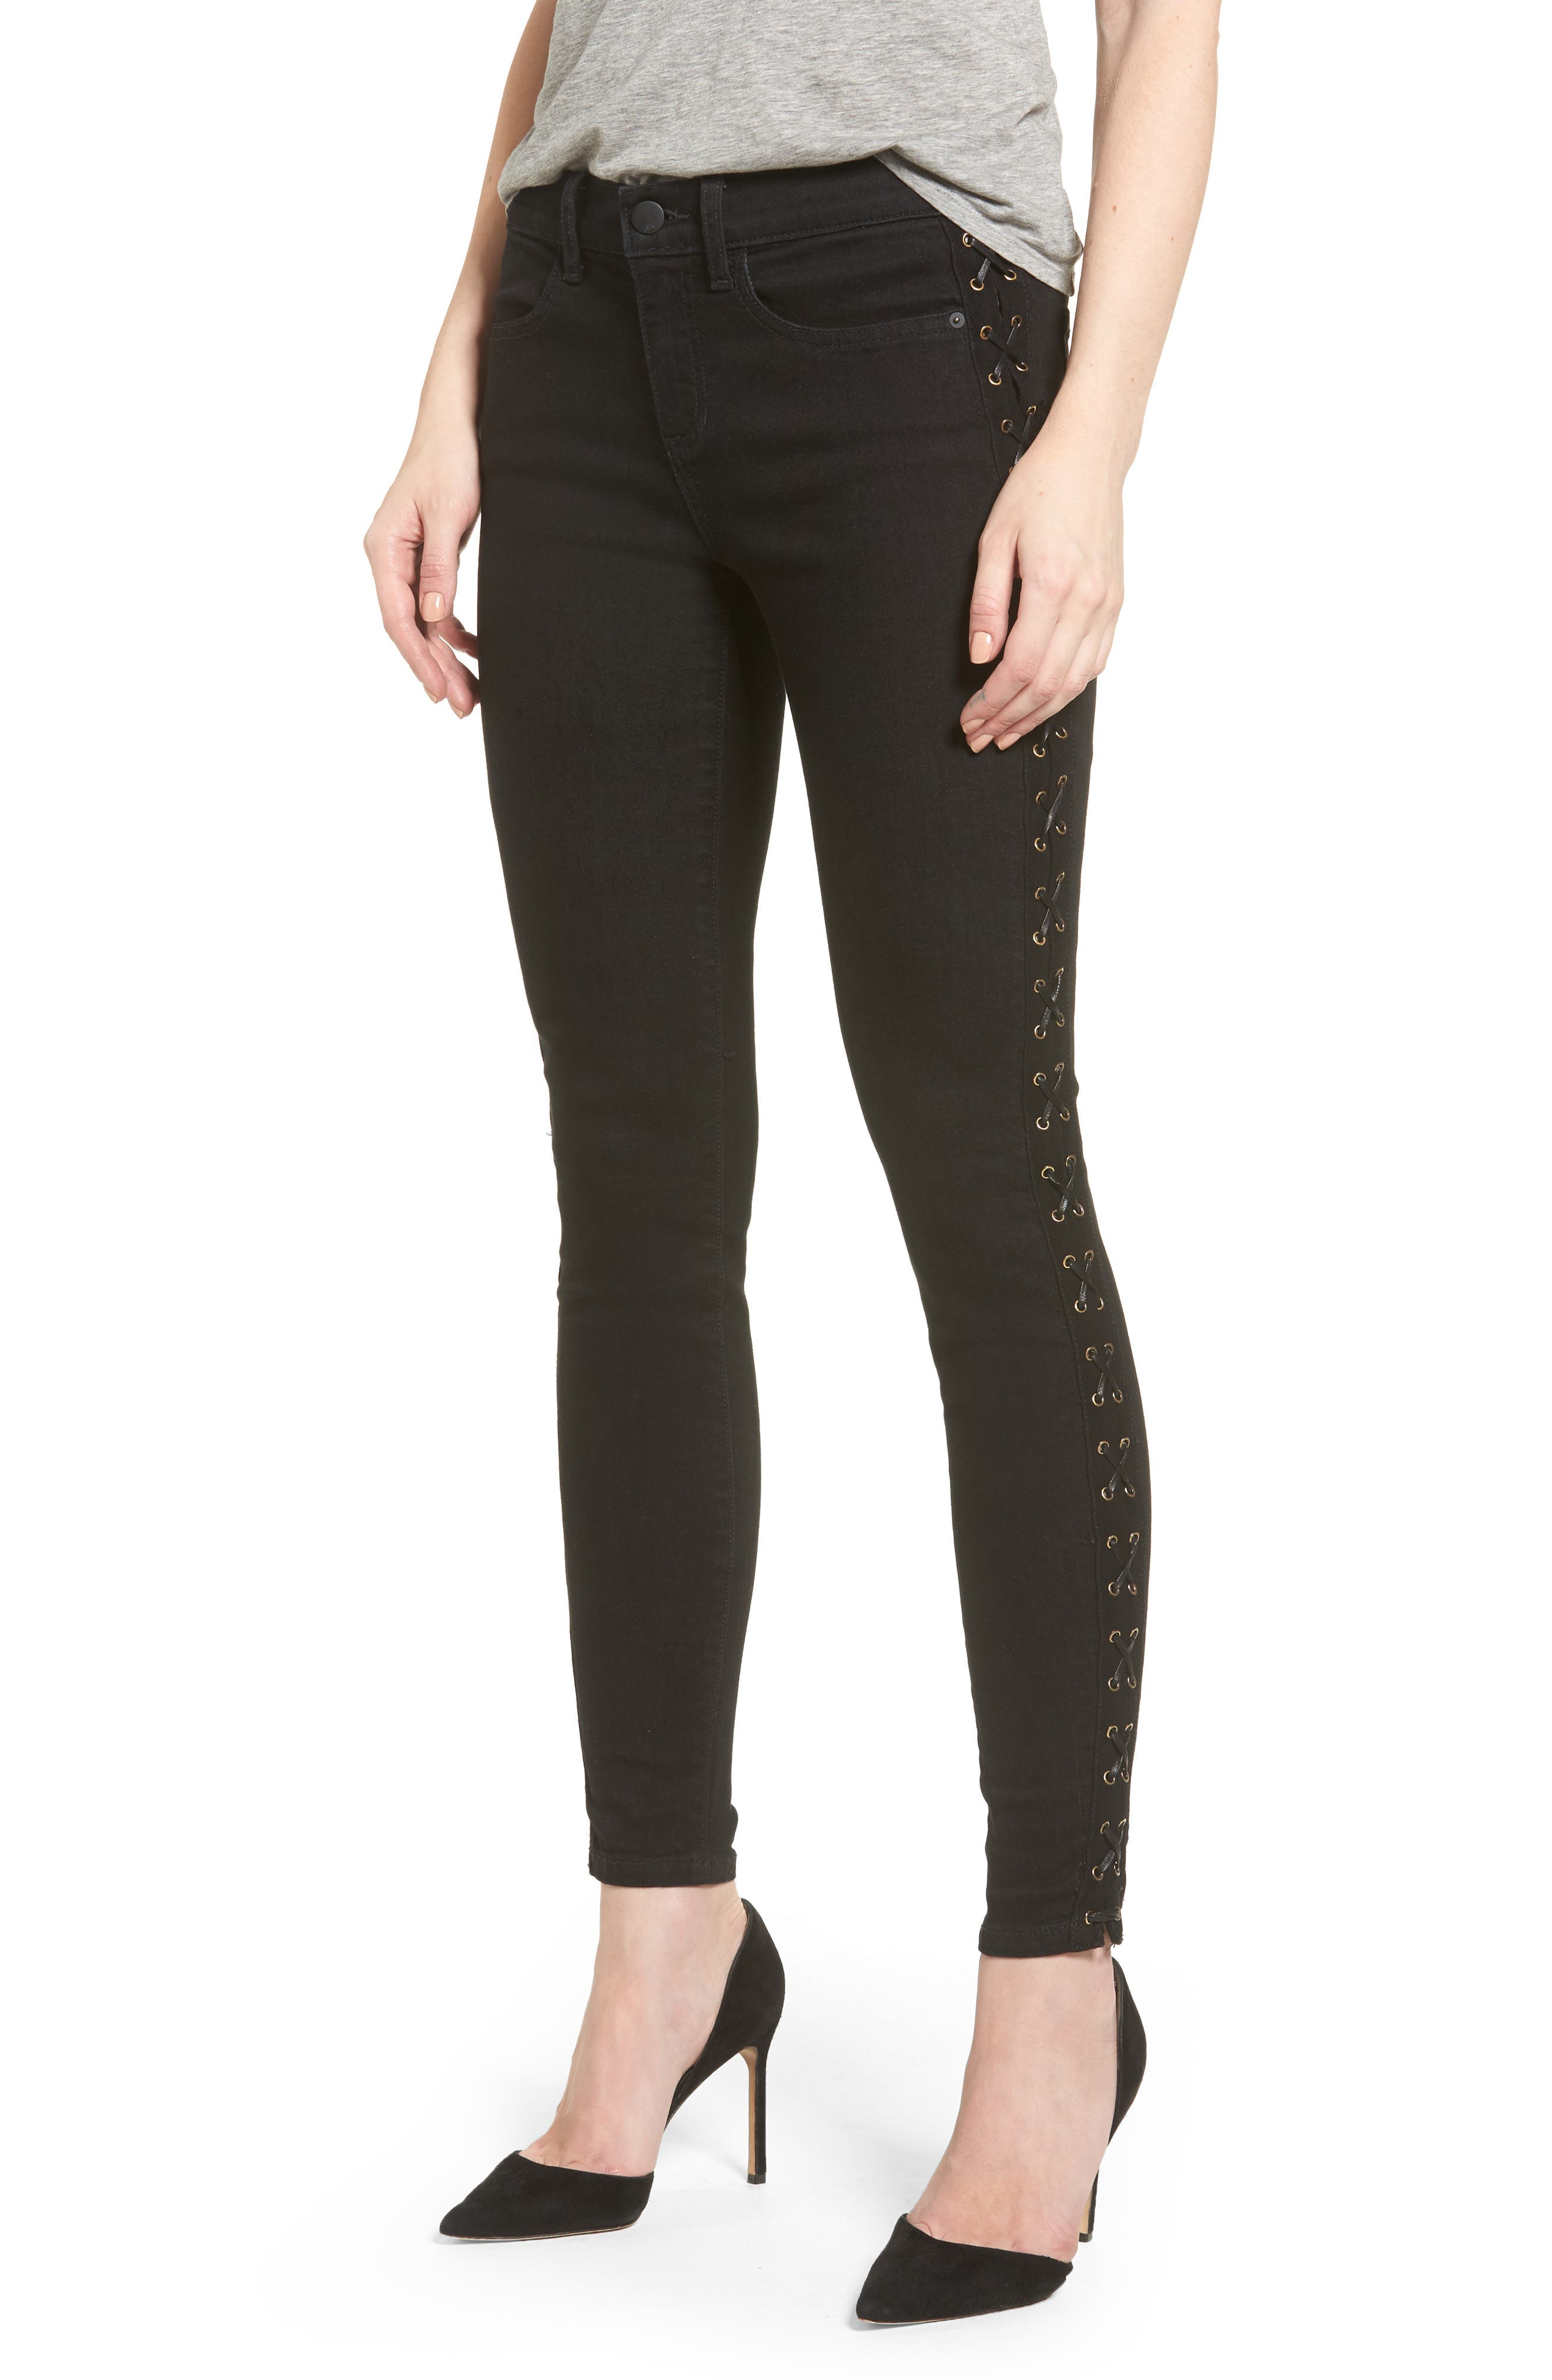 SP Black Lace-Up Skinny Jeans